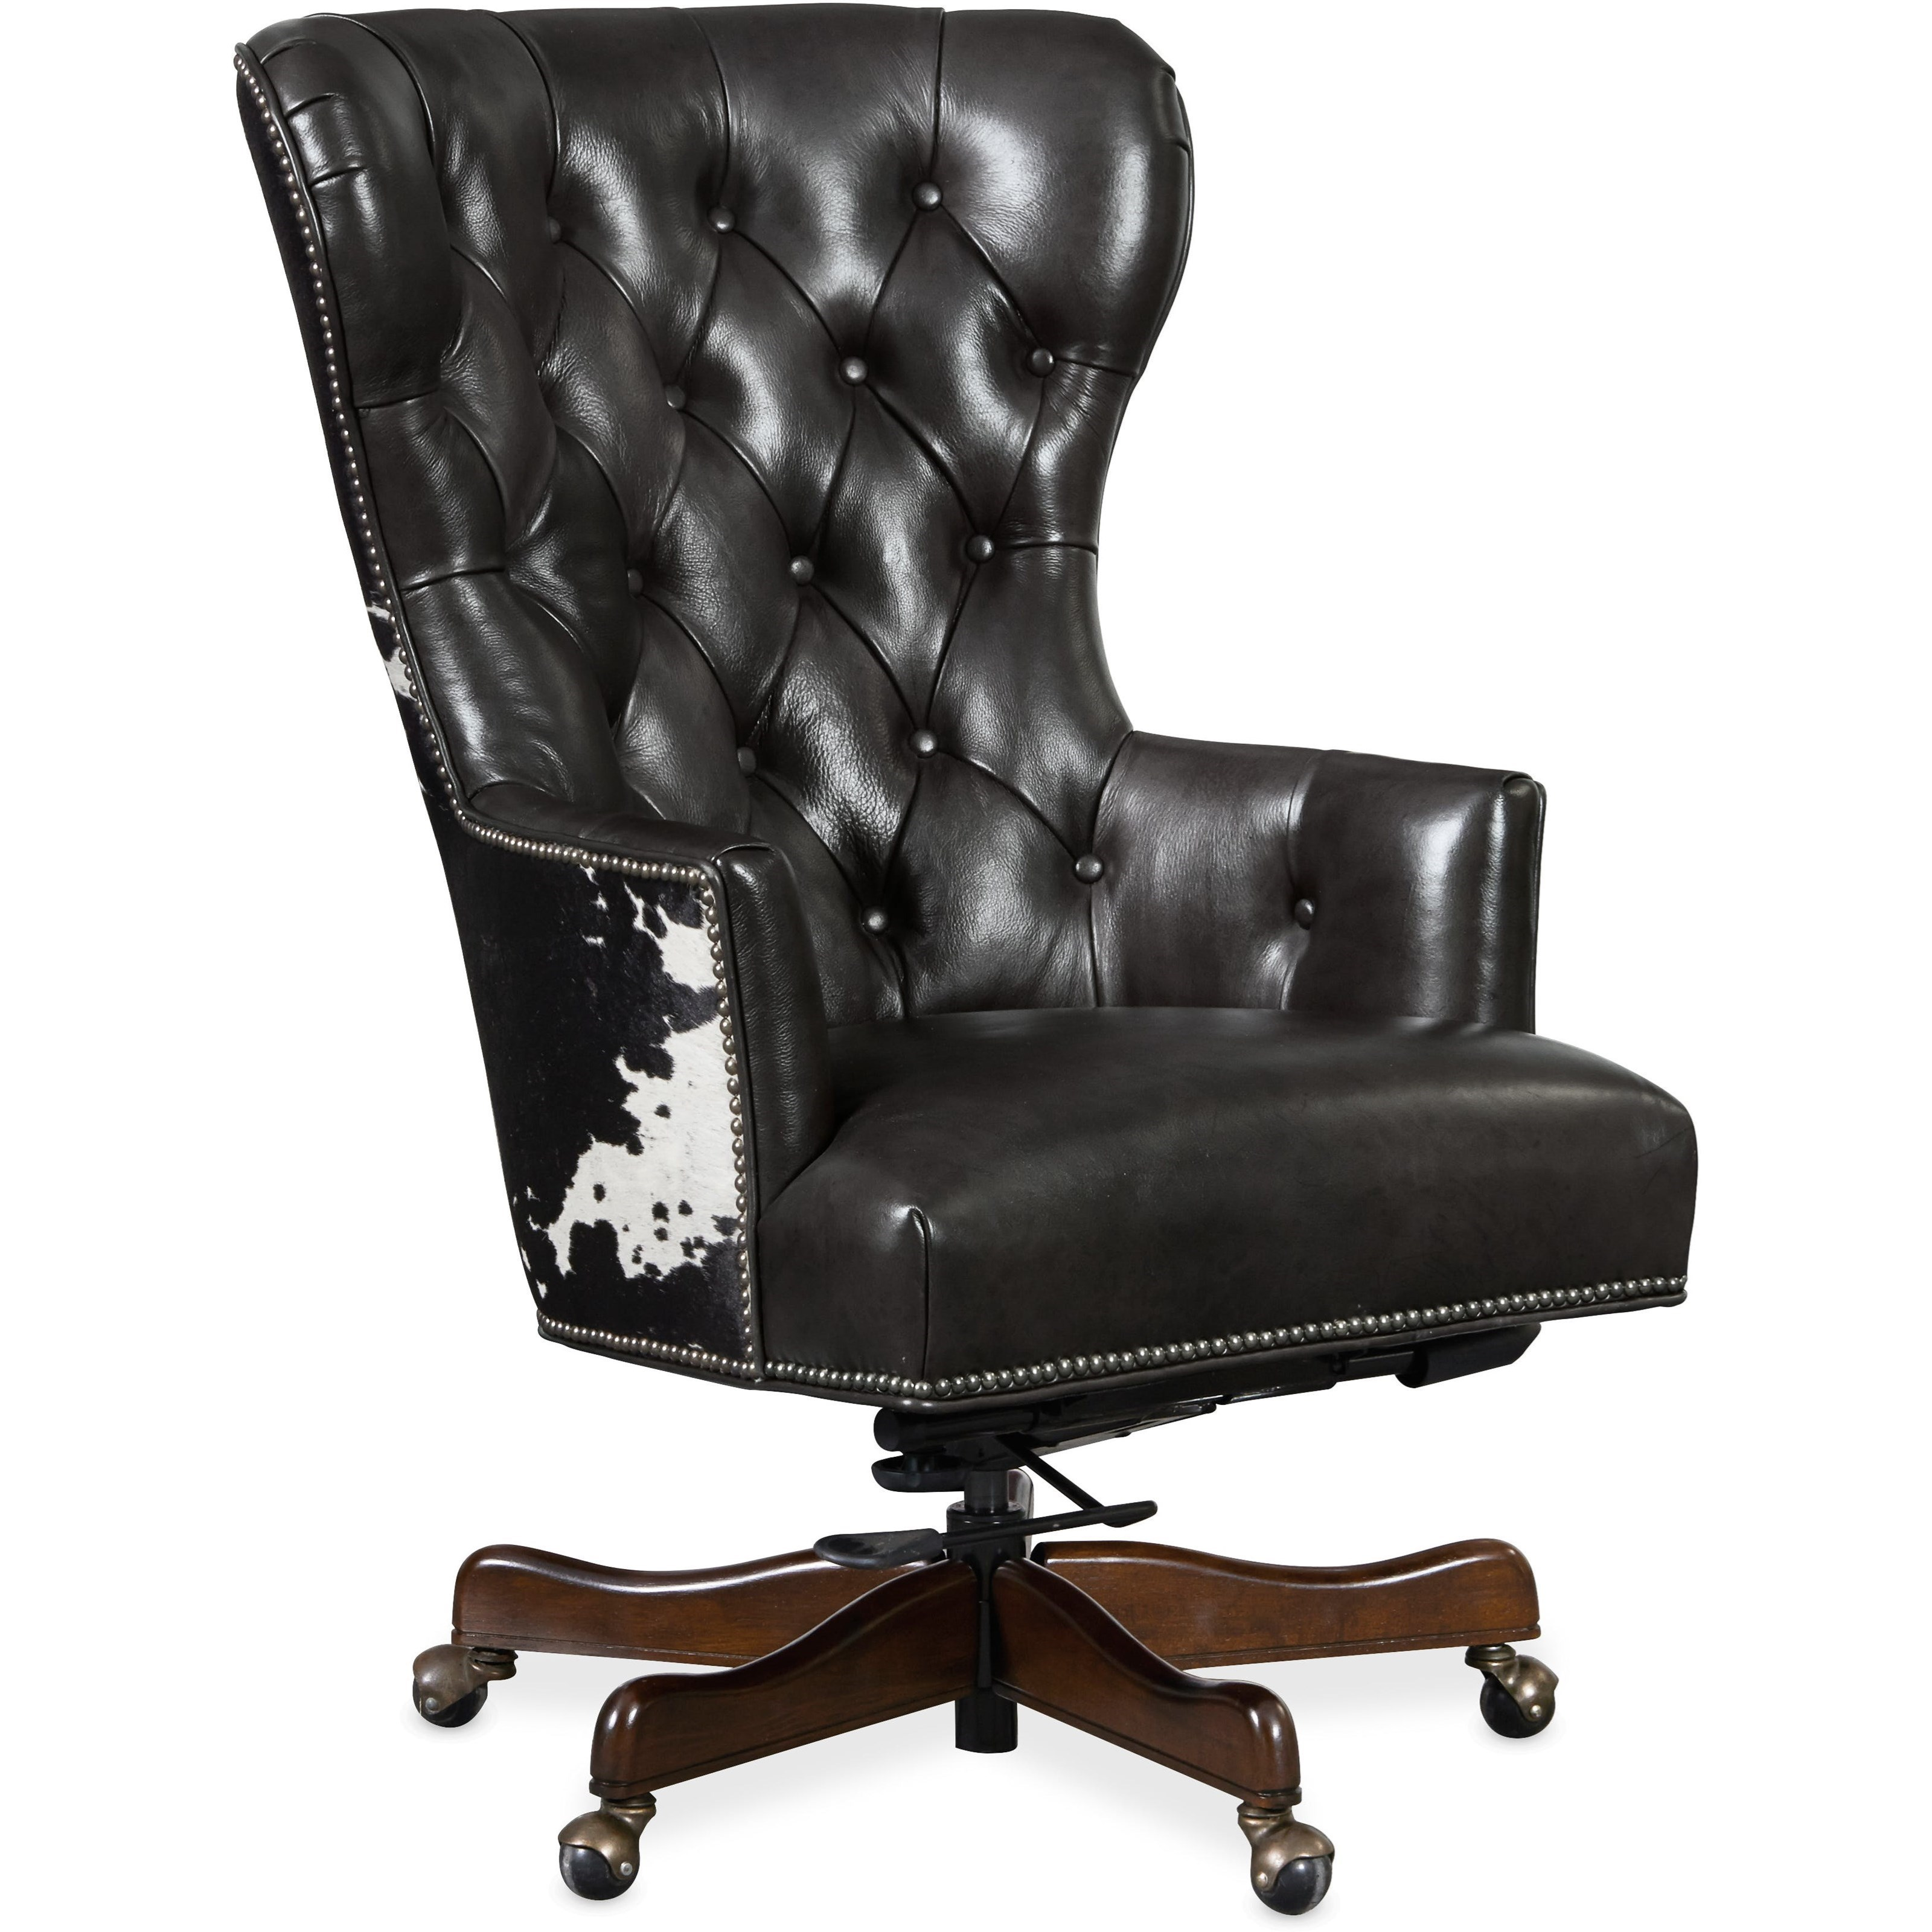 Tufted Leather Office Chair Executive Seating Traditional Home Office Chair With Tufting By Hooker Furniture At Dunk Bright Furniture